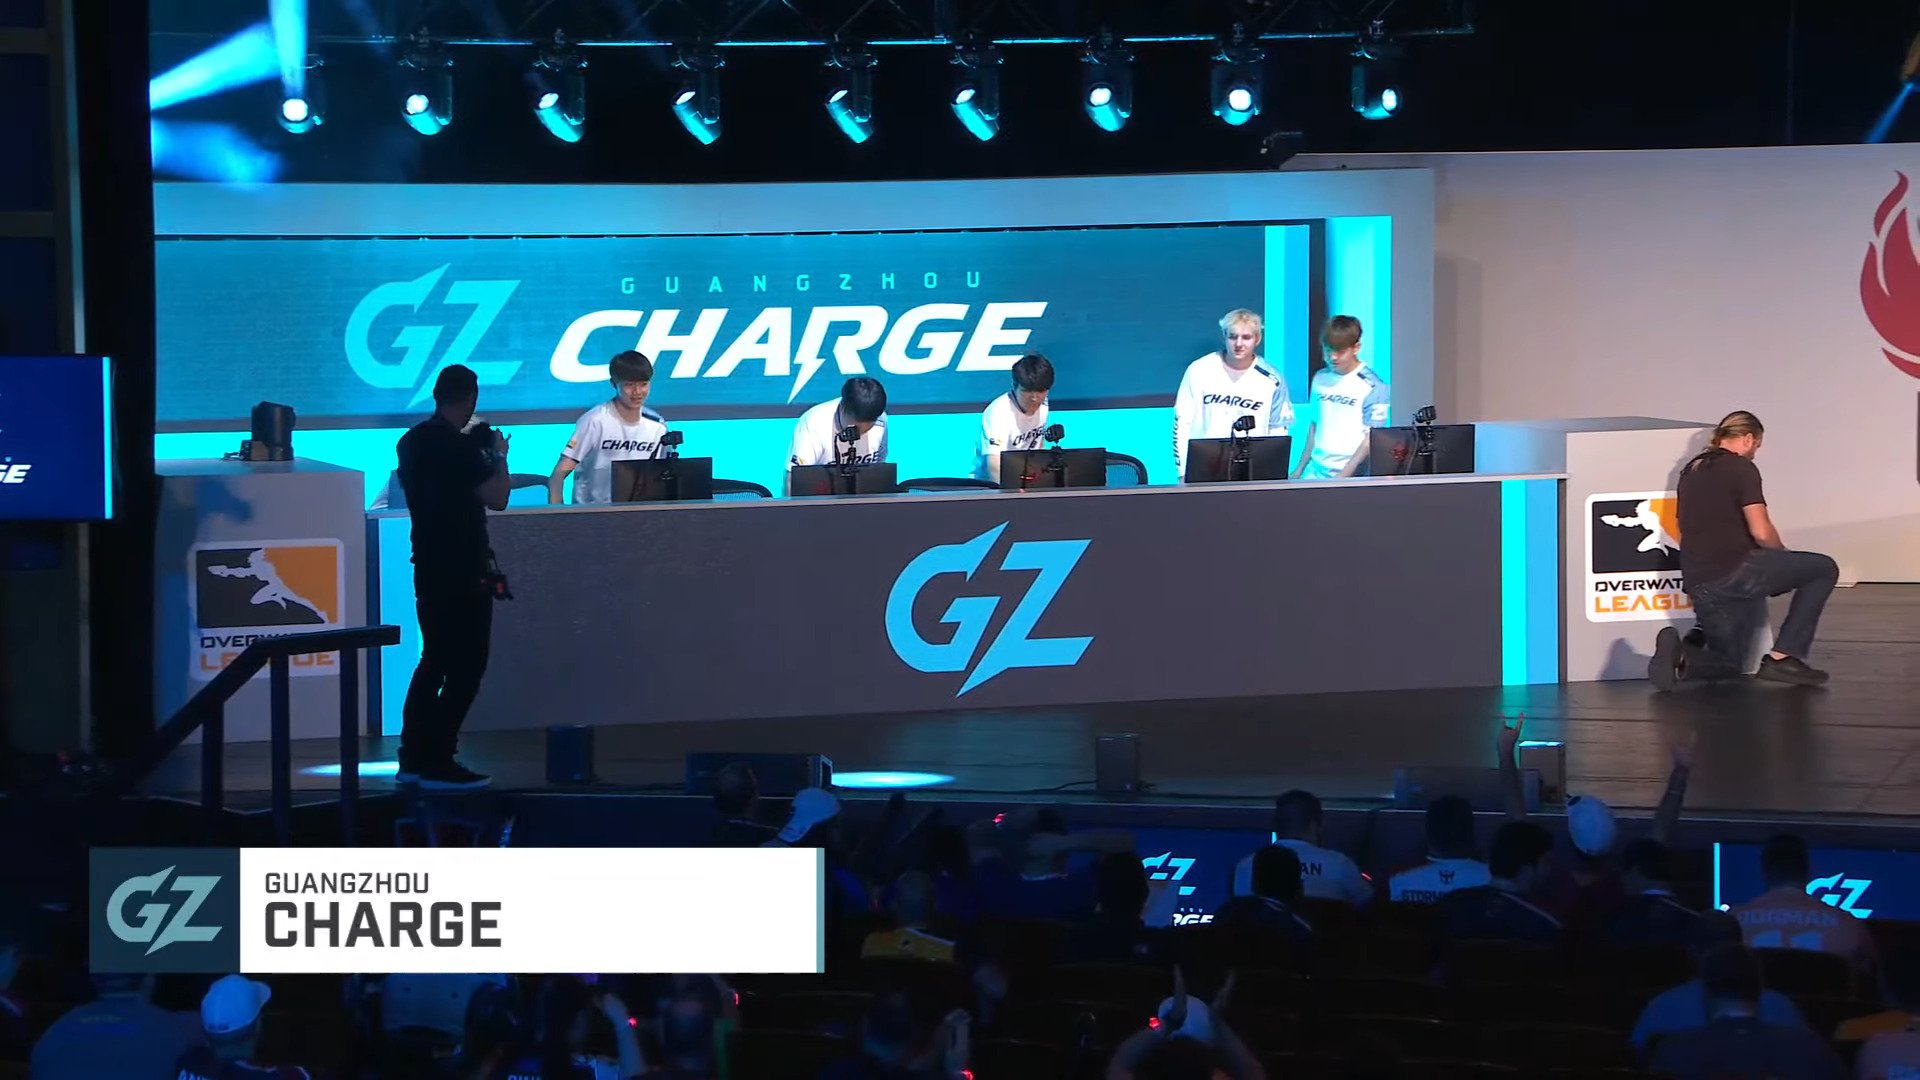 OWL – Contenders Player ChoiSehwan Joins The Guangzhou Charge For The 2021 Season